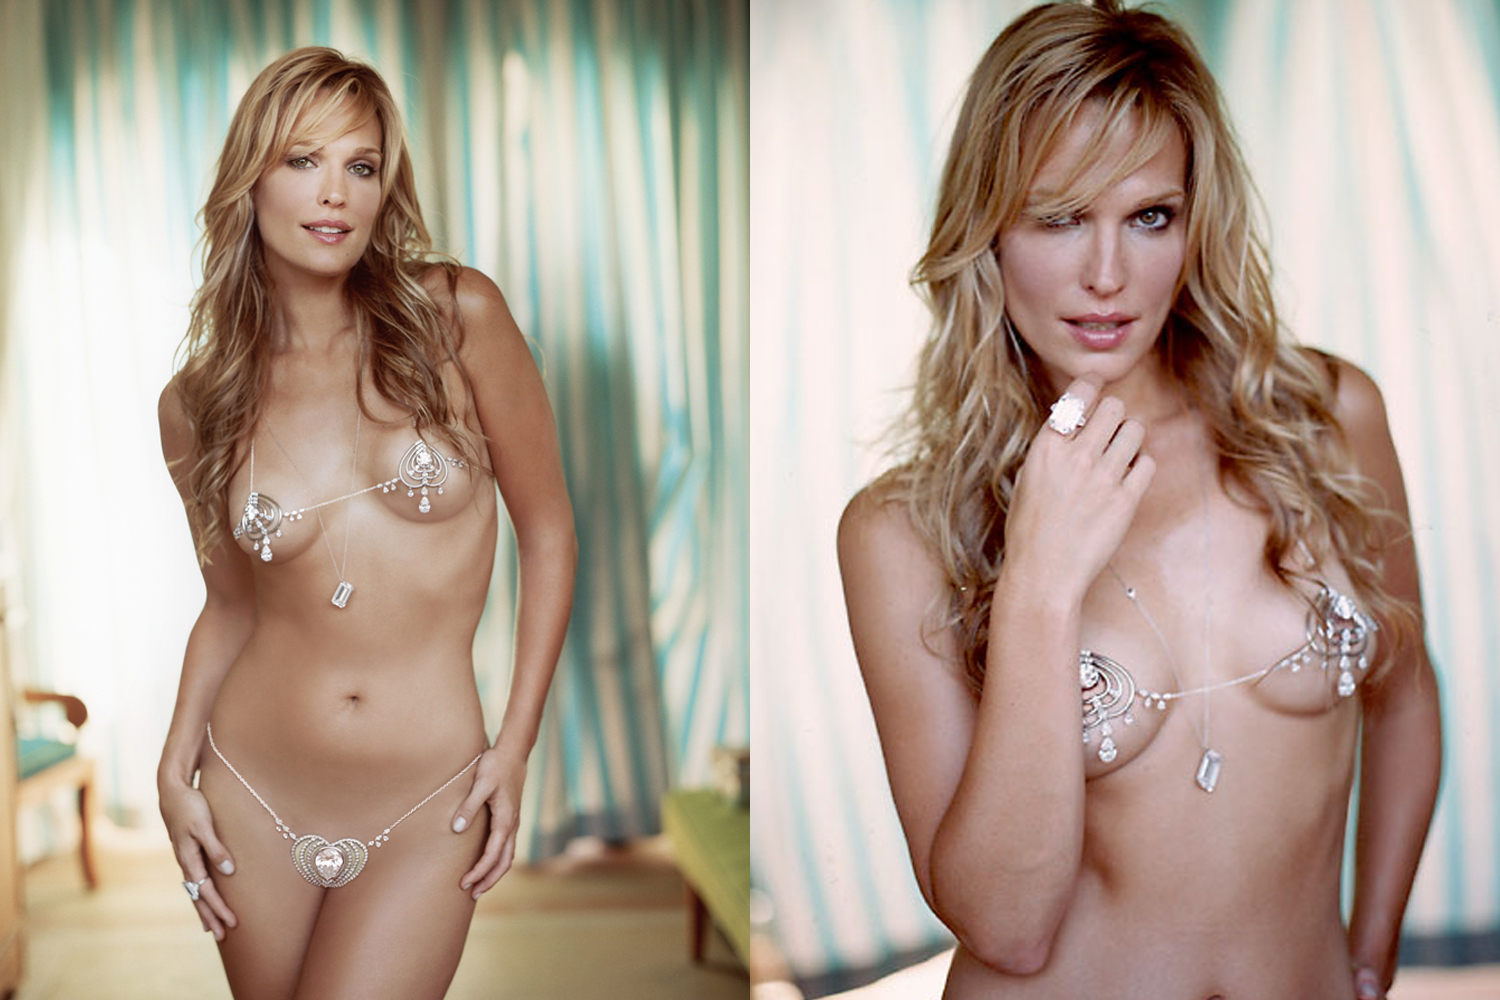 Molly sims naked celebrities free images and pictures